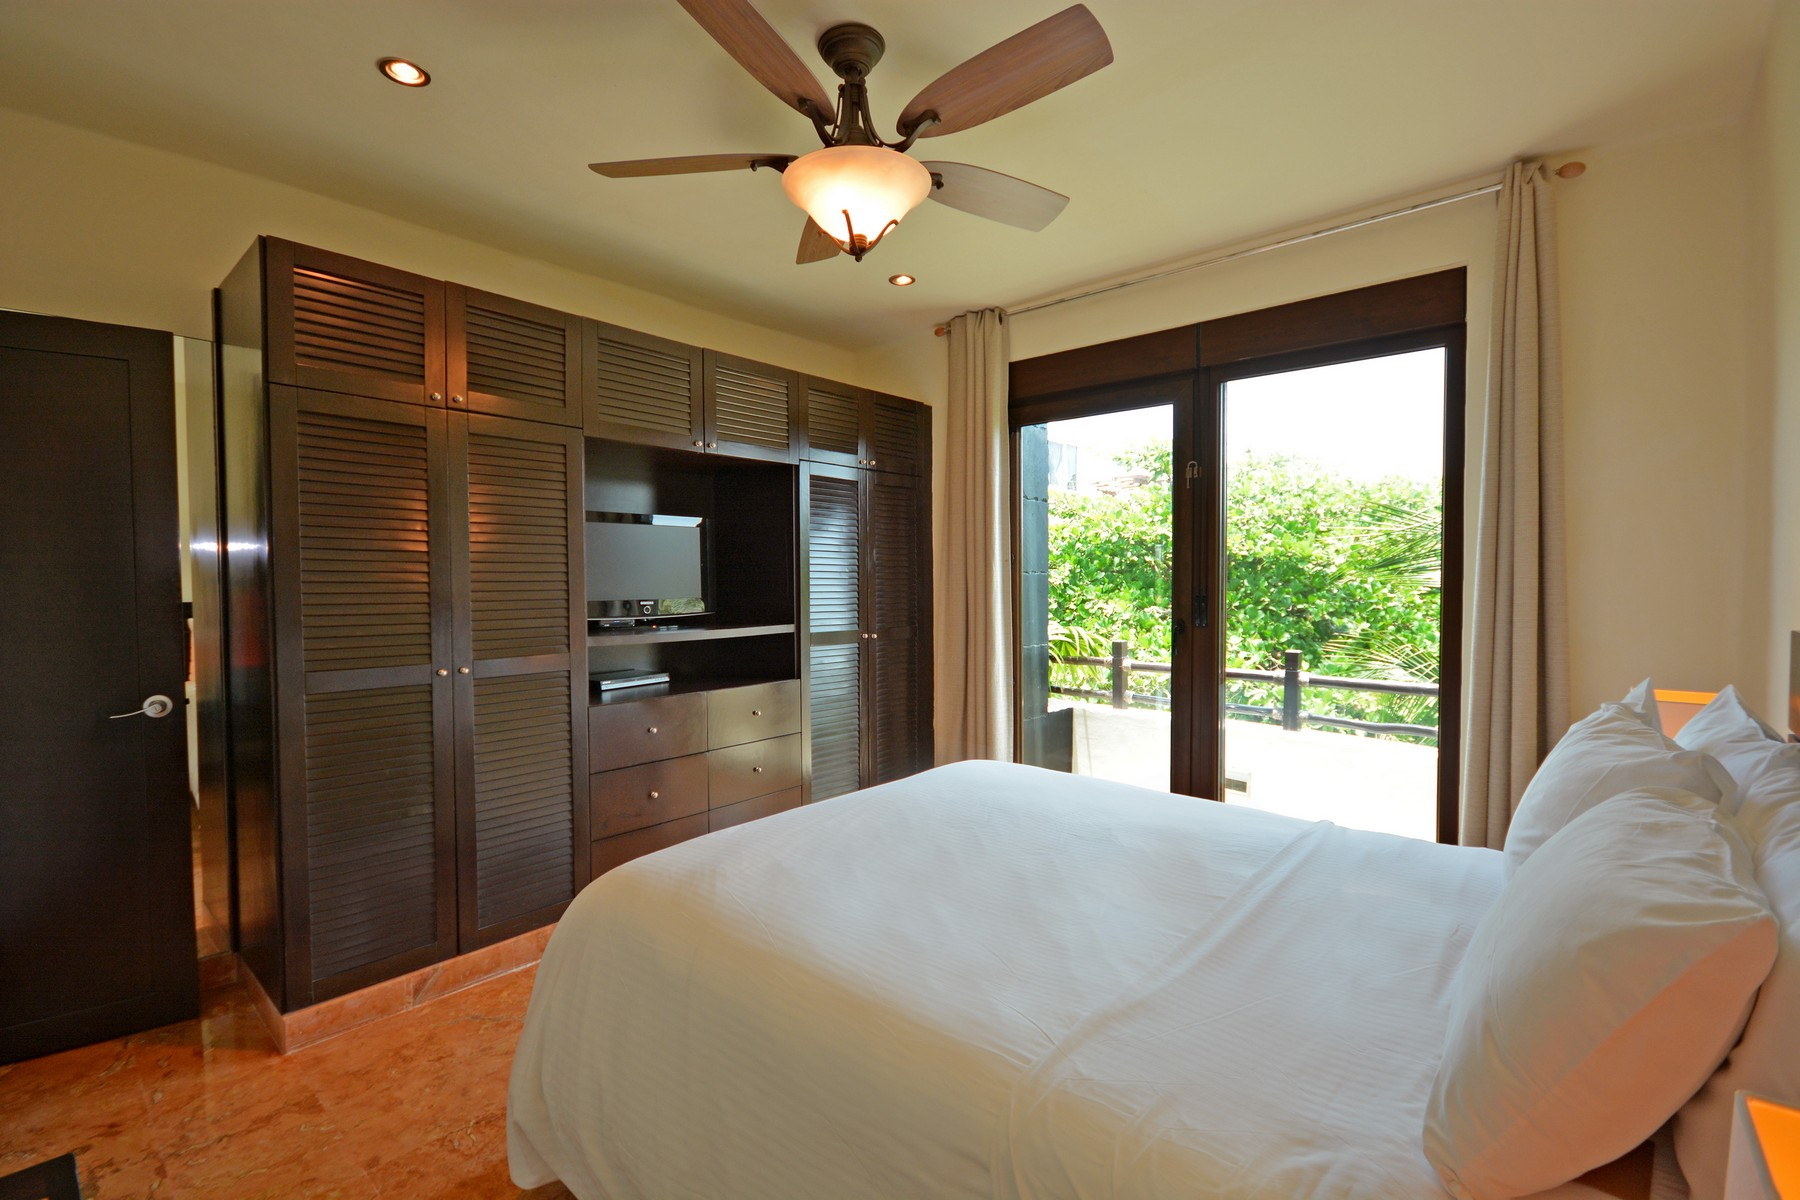 Additional photo for property listing at INTRIGUING 3 BEDROOM PENTHOUSE Beachside, El Taj Calle 1era Nte, entre 12 y 14 Nte. Playa Del Carmen, Quintana Roo 77710 Mexico